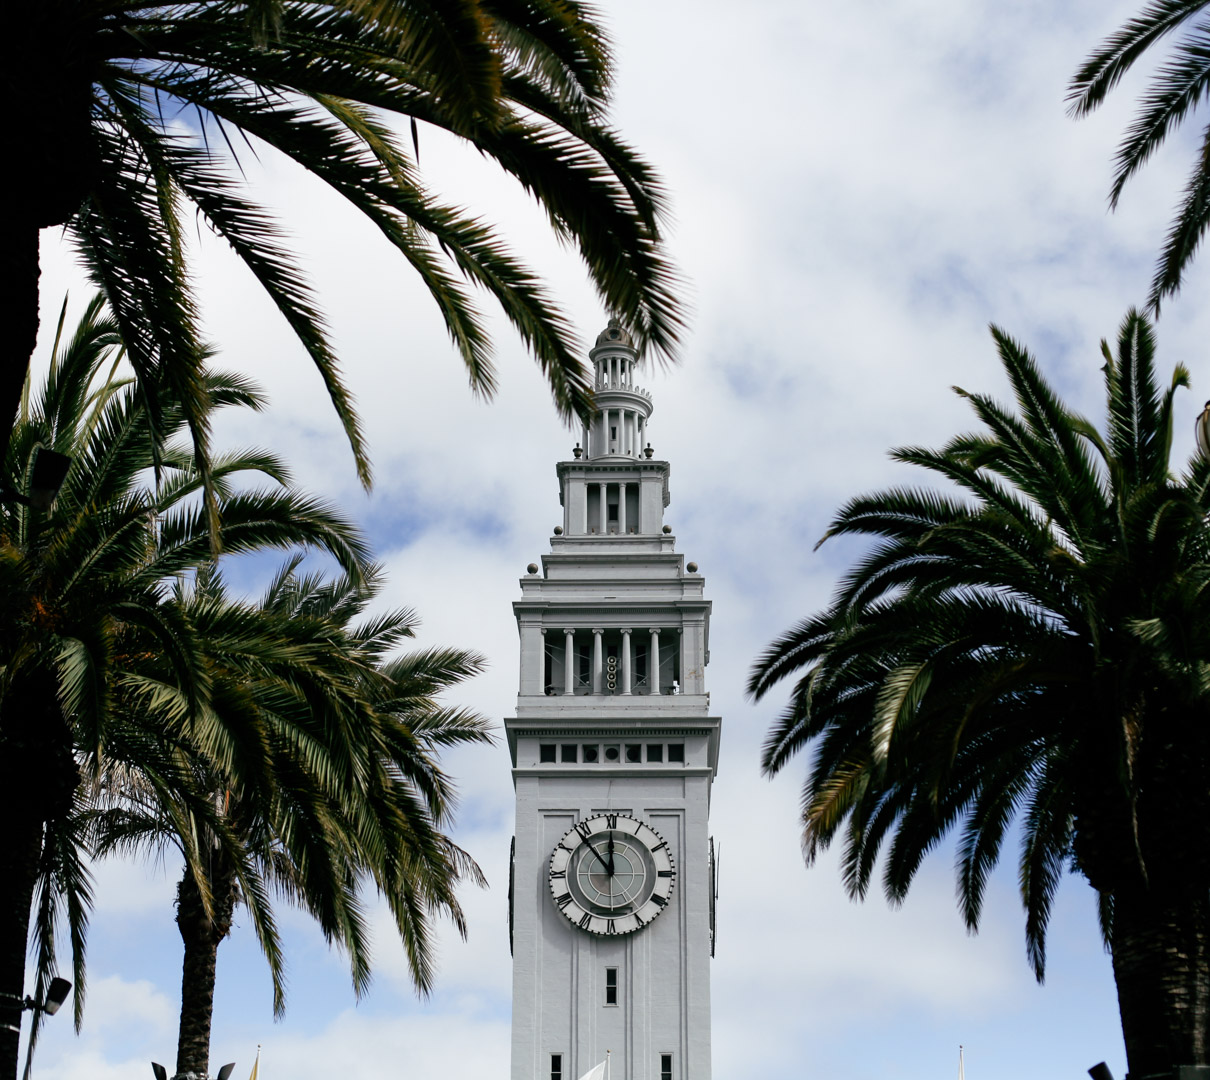 Tip of Ferry Building surronded by palm trees